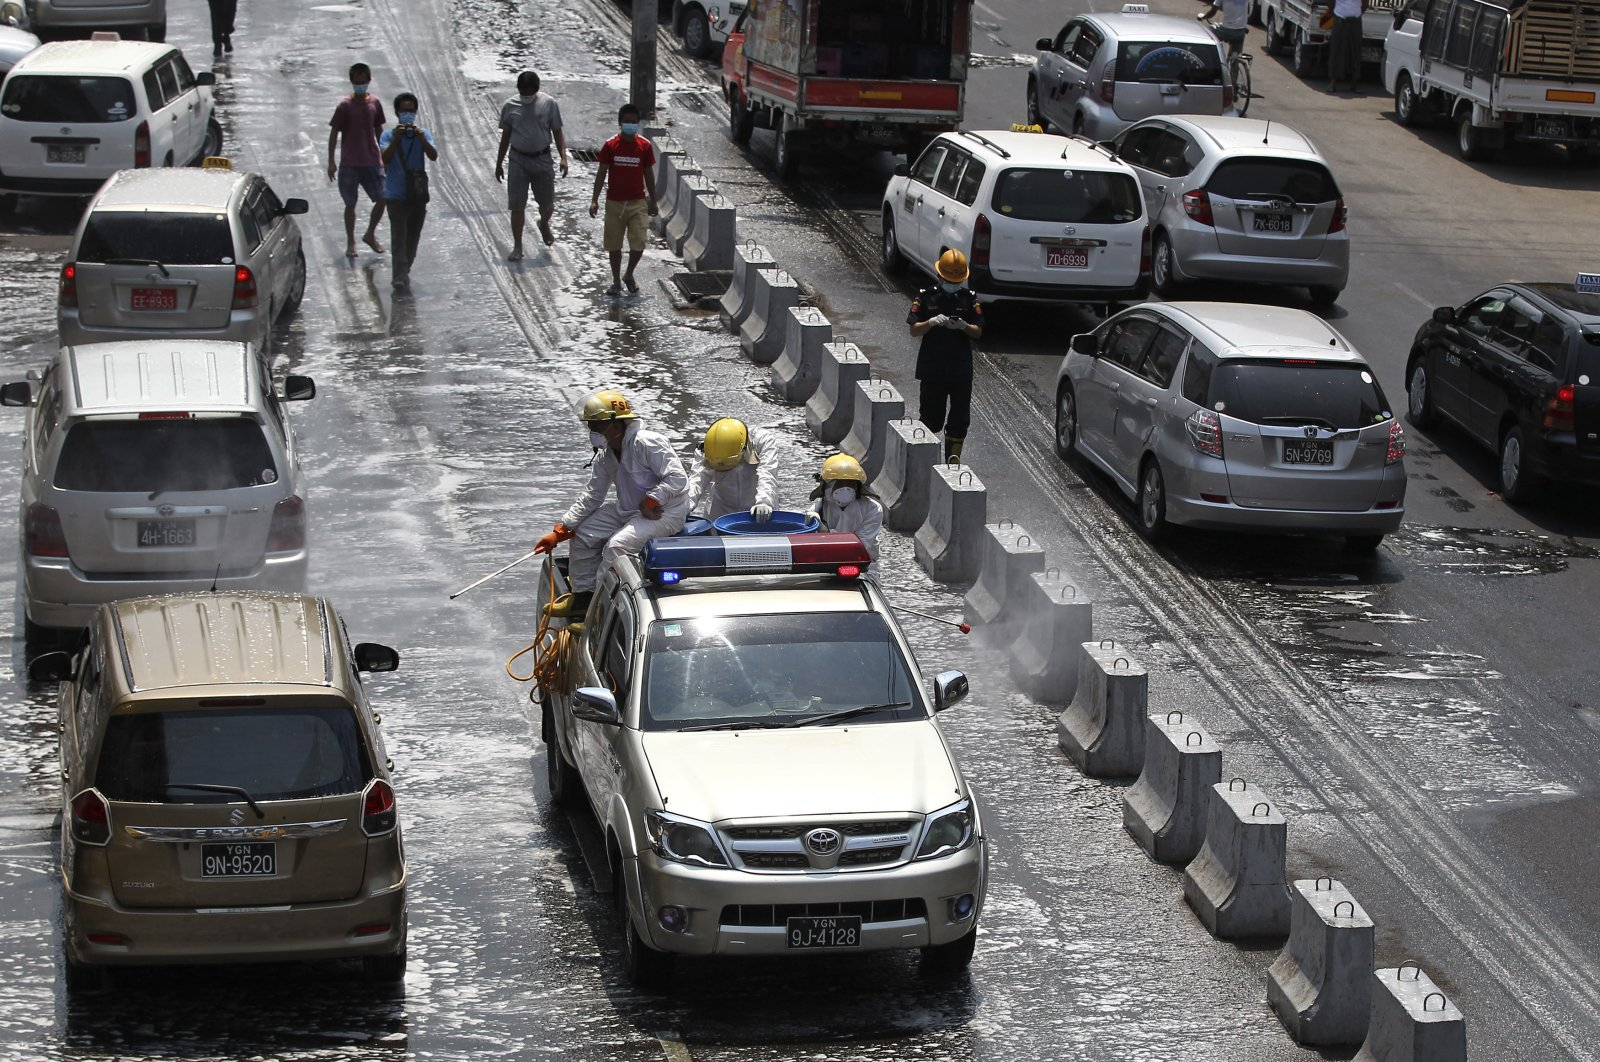 The fire department spray disinfectant to help curb the spread of the new coronavirus on a road Tuesday, April 21, 2020, in Yangon, Myanmar. (AP Photo)